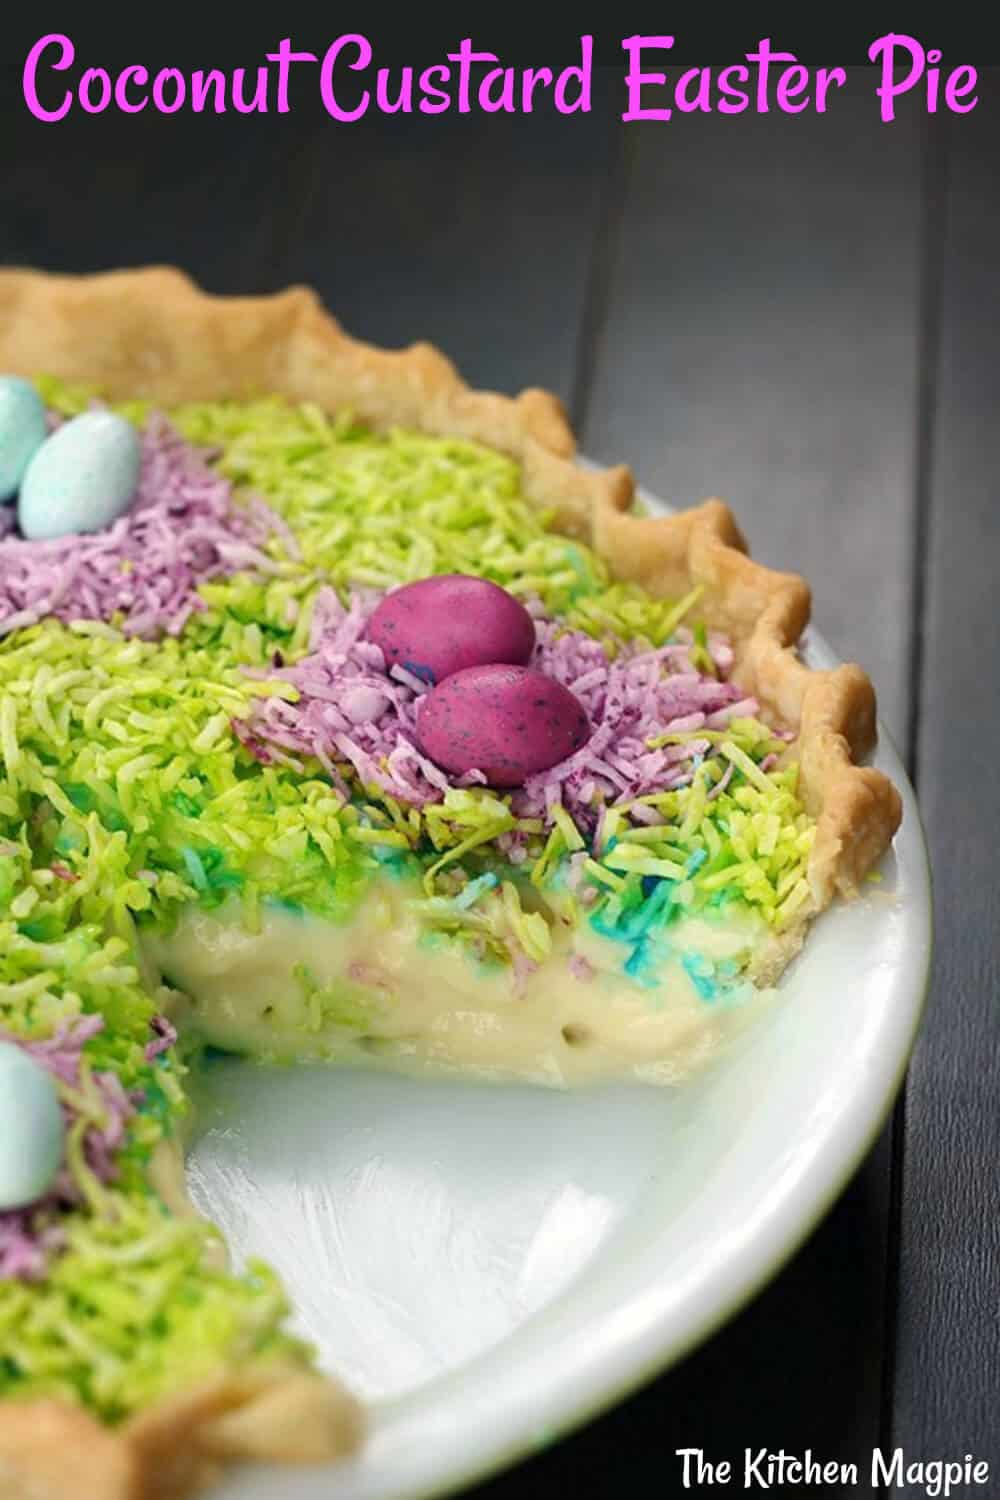 This gloriously colored Coconut Custard Easter Pie is sure to be the hit of your Easter dinner! Easy, fast and delicious! #dessert #easter #coconut #pie